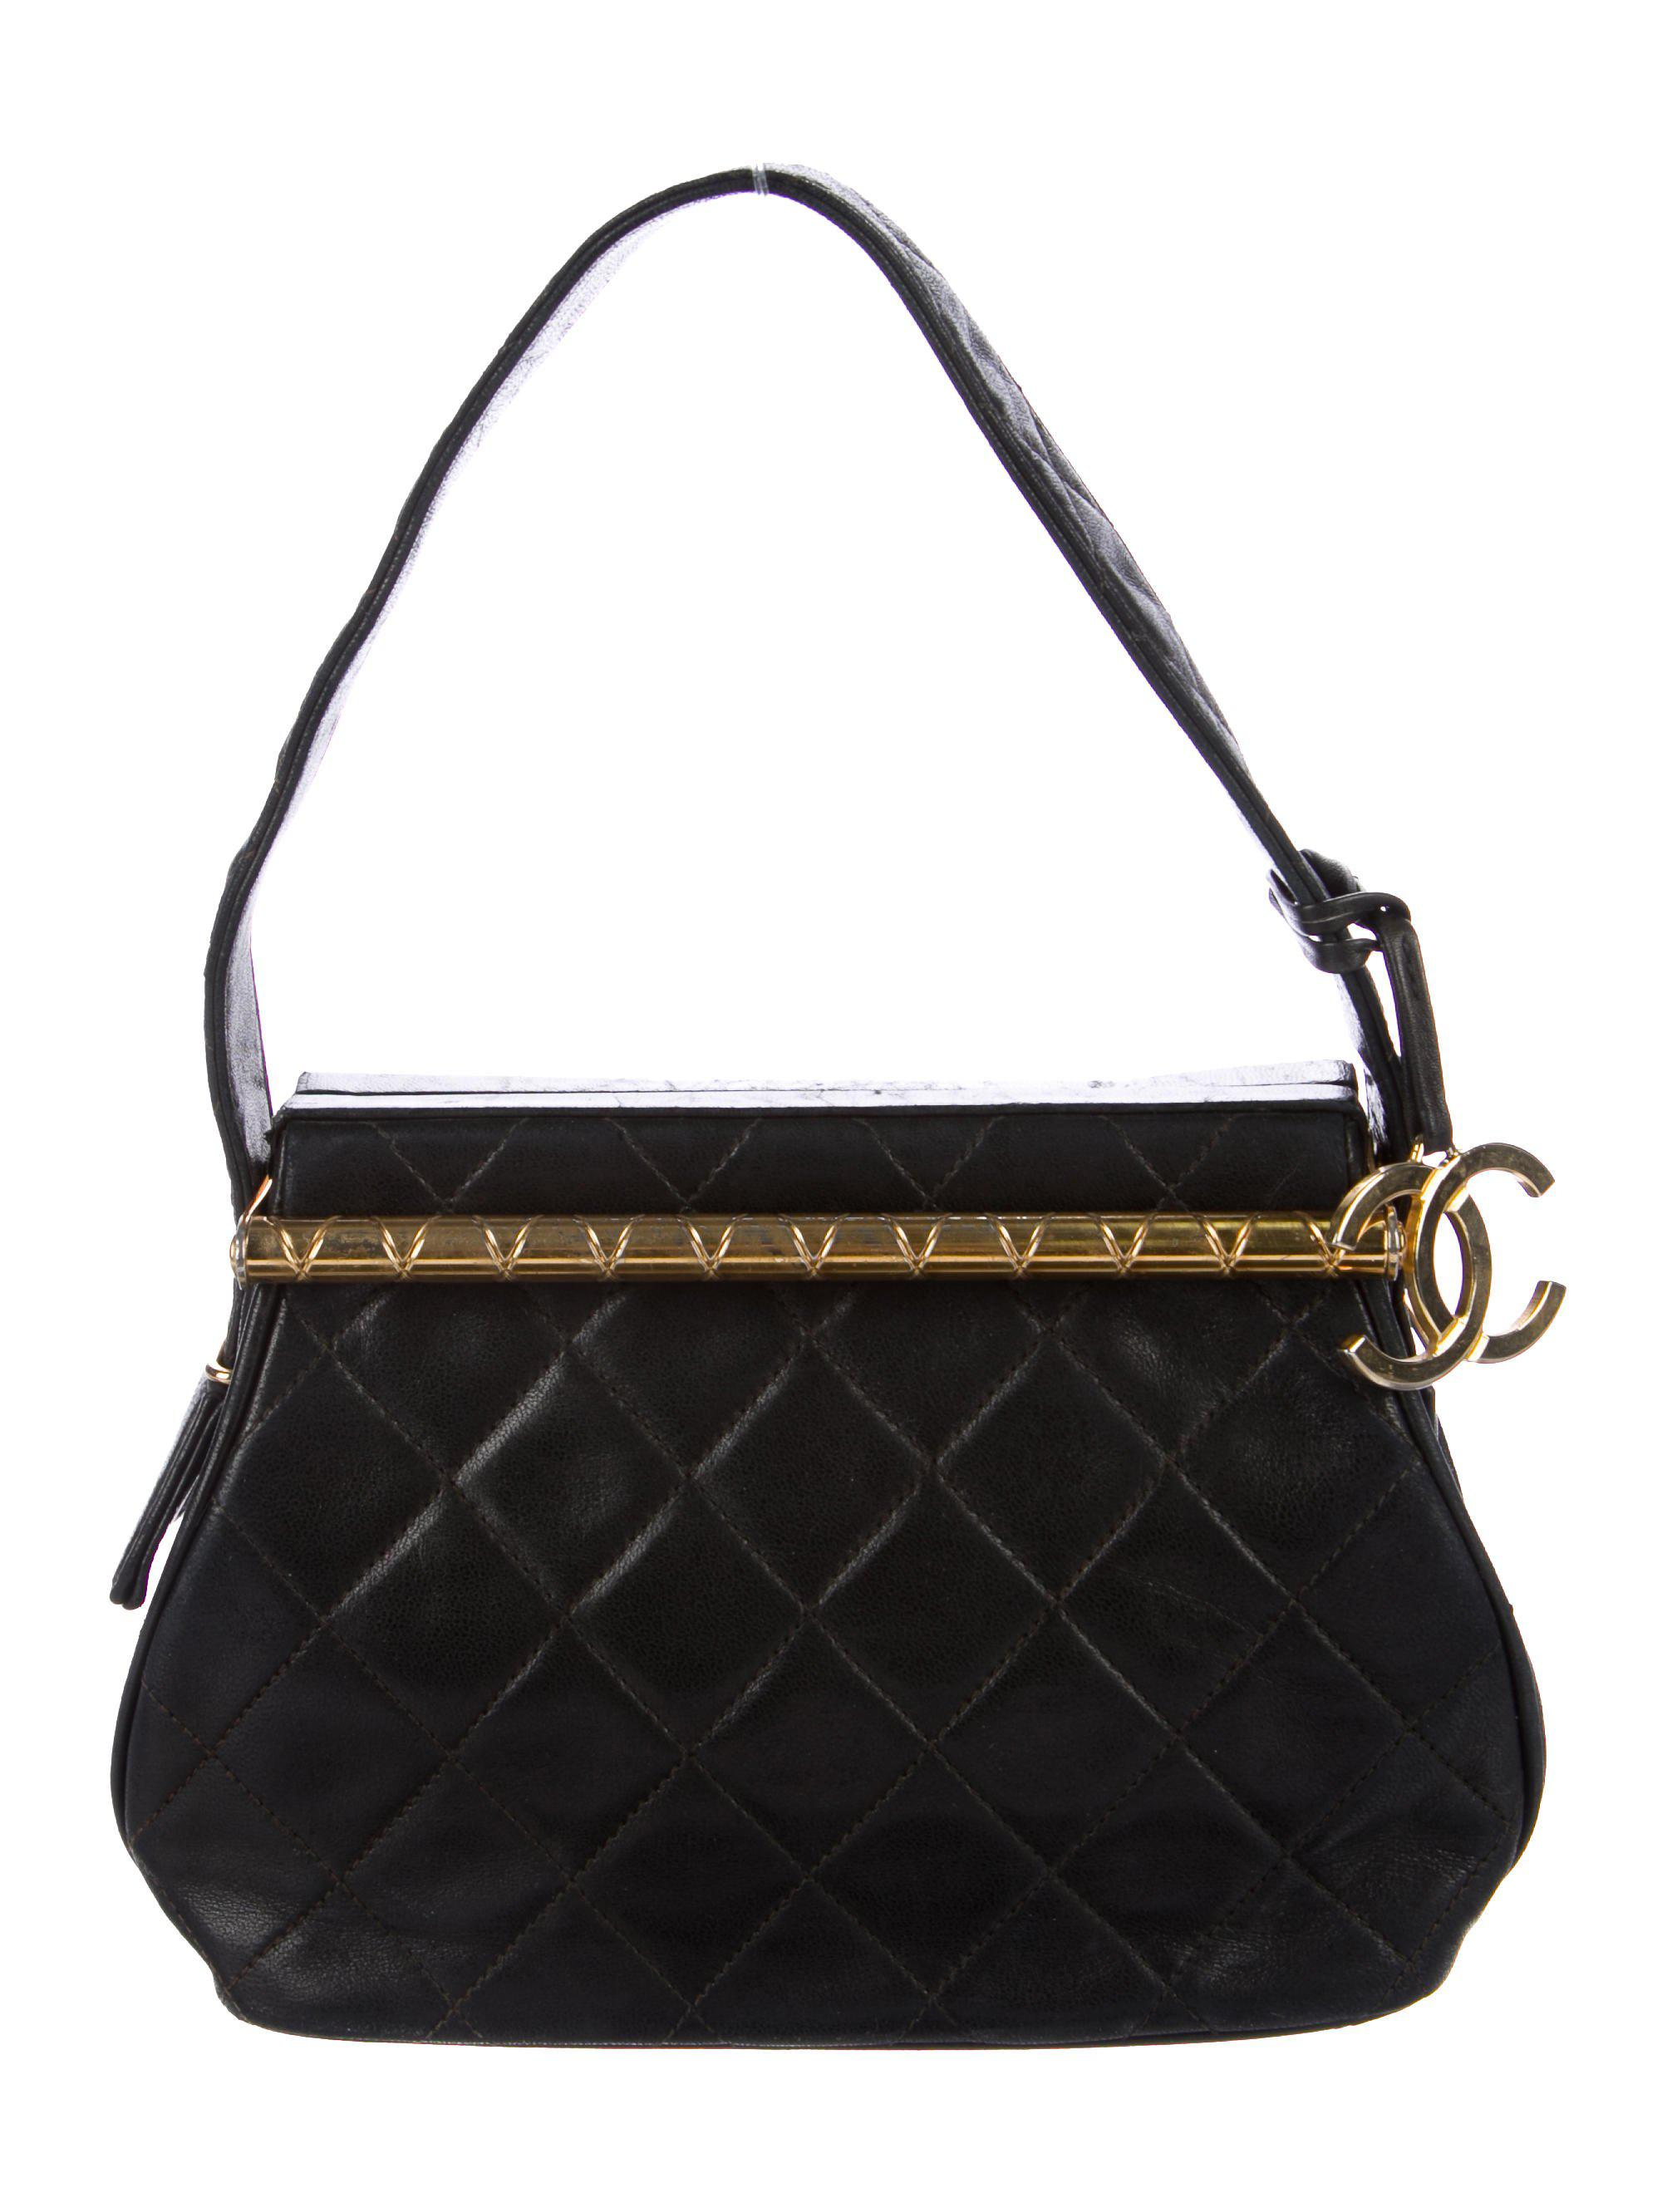 c3f2b599ff35 Lyst - Chanel Vintage Lambskin Quilted Frame Handle Bag Black in ...